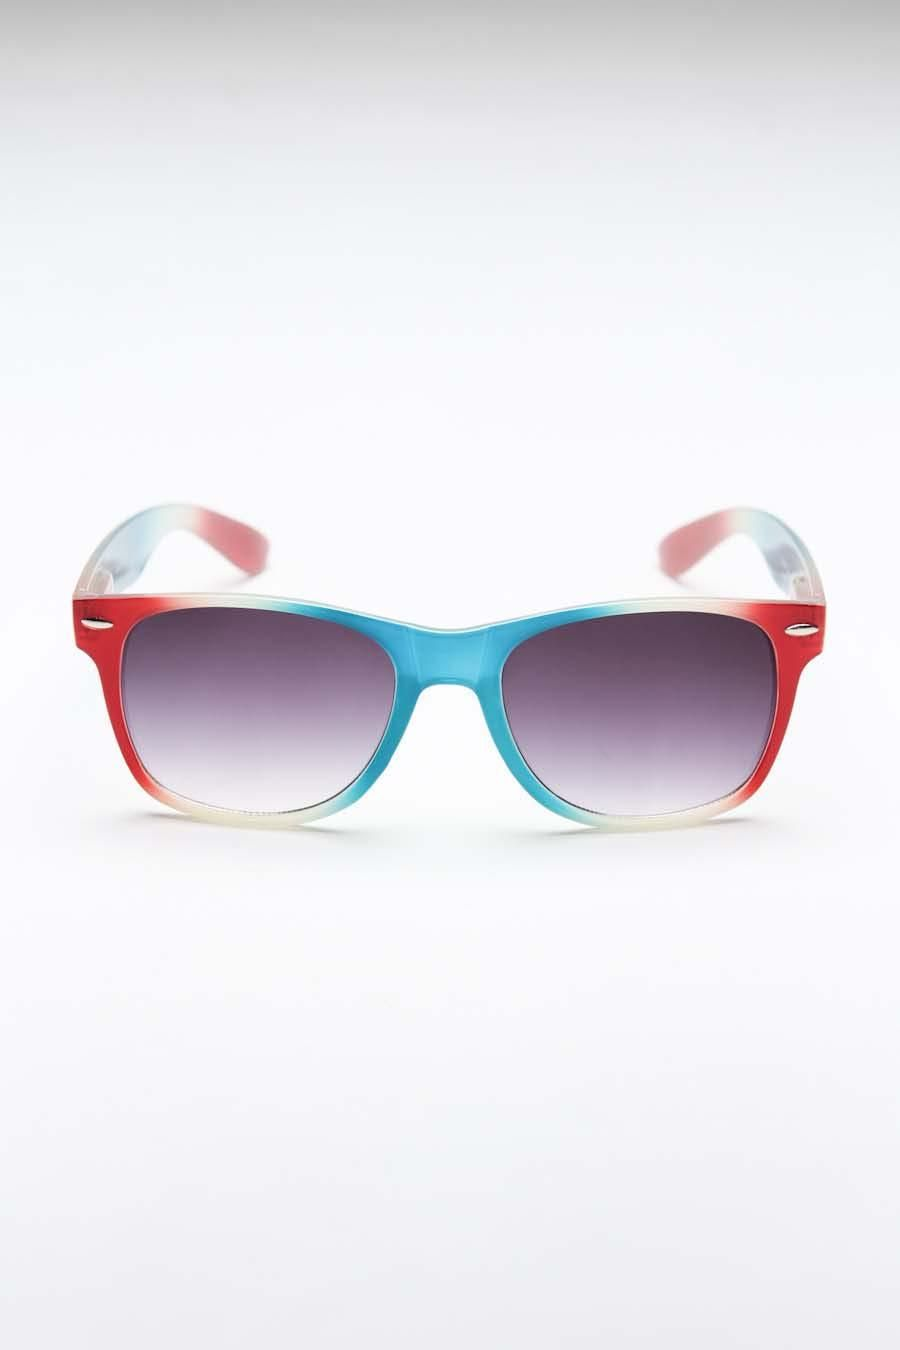 49cc35de8 Perfect for July 4th! AJ MORGAN New Wave Shades | Accessorize ...